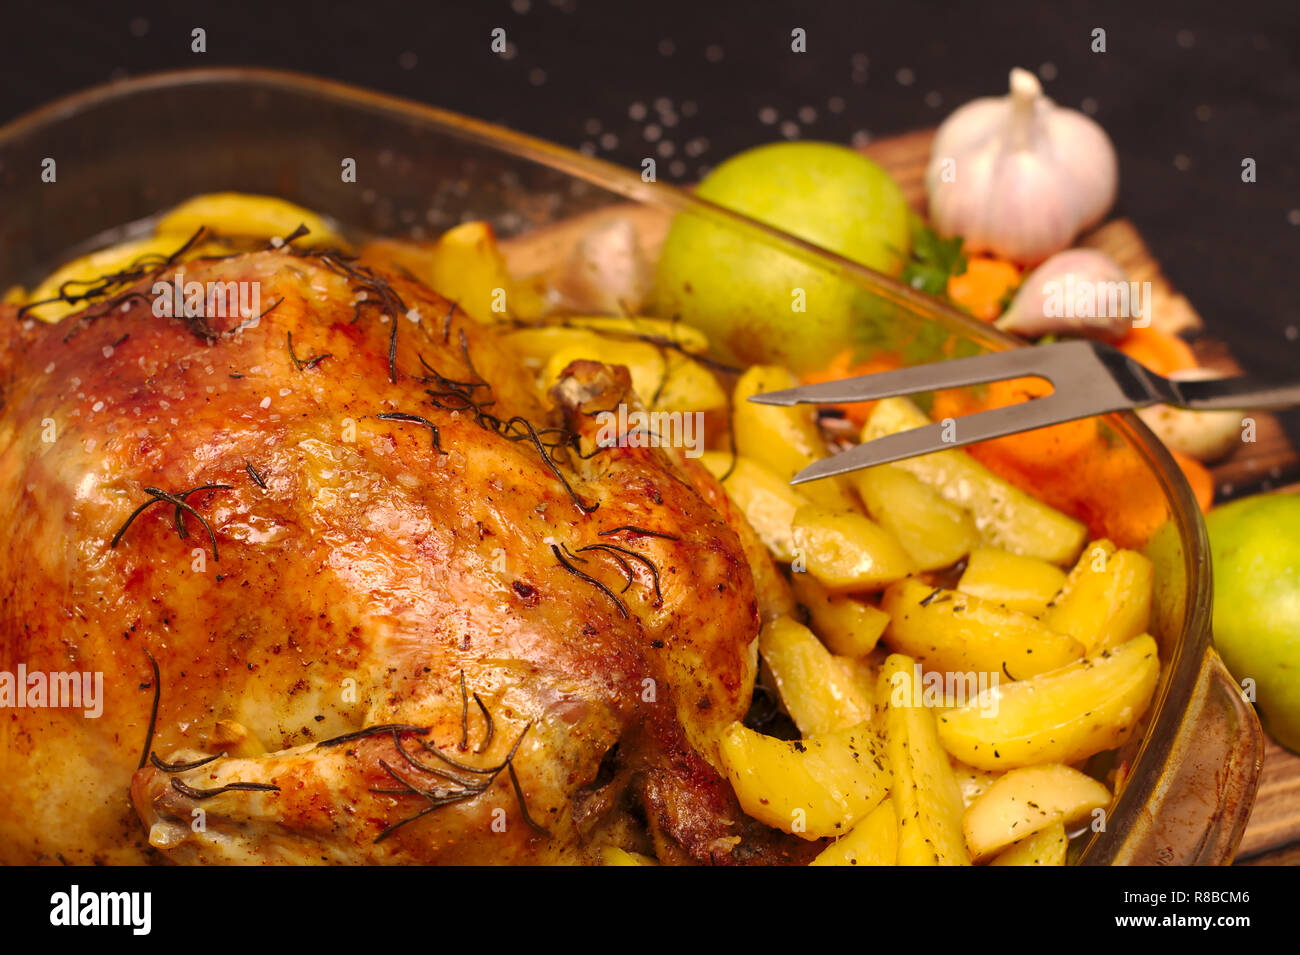 oven baked apple chicken in a glass dish on a wooden plank - Stock Image